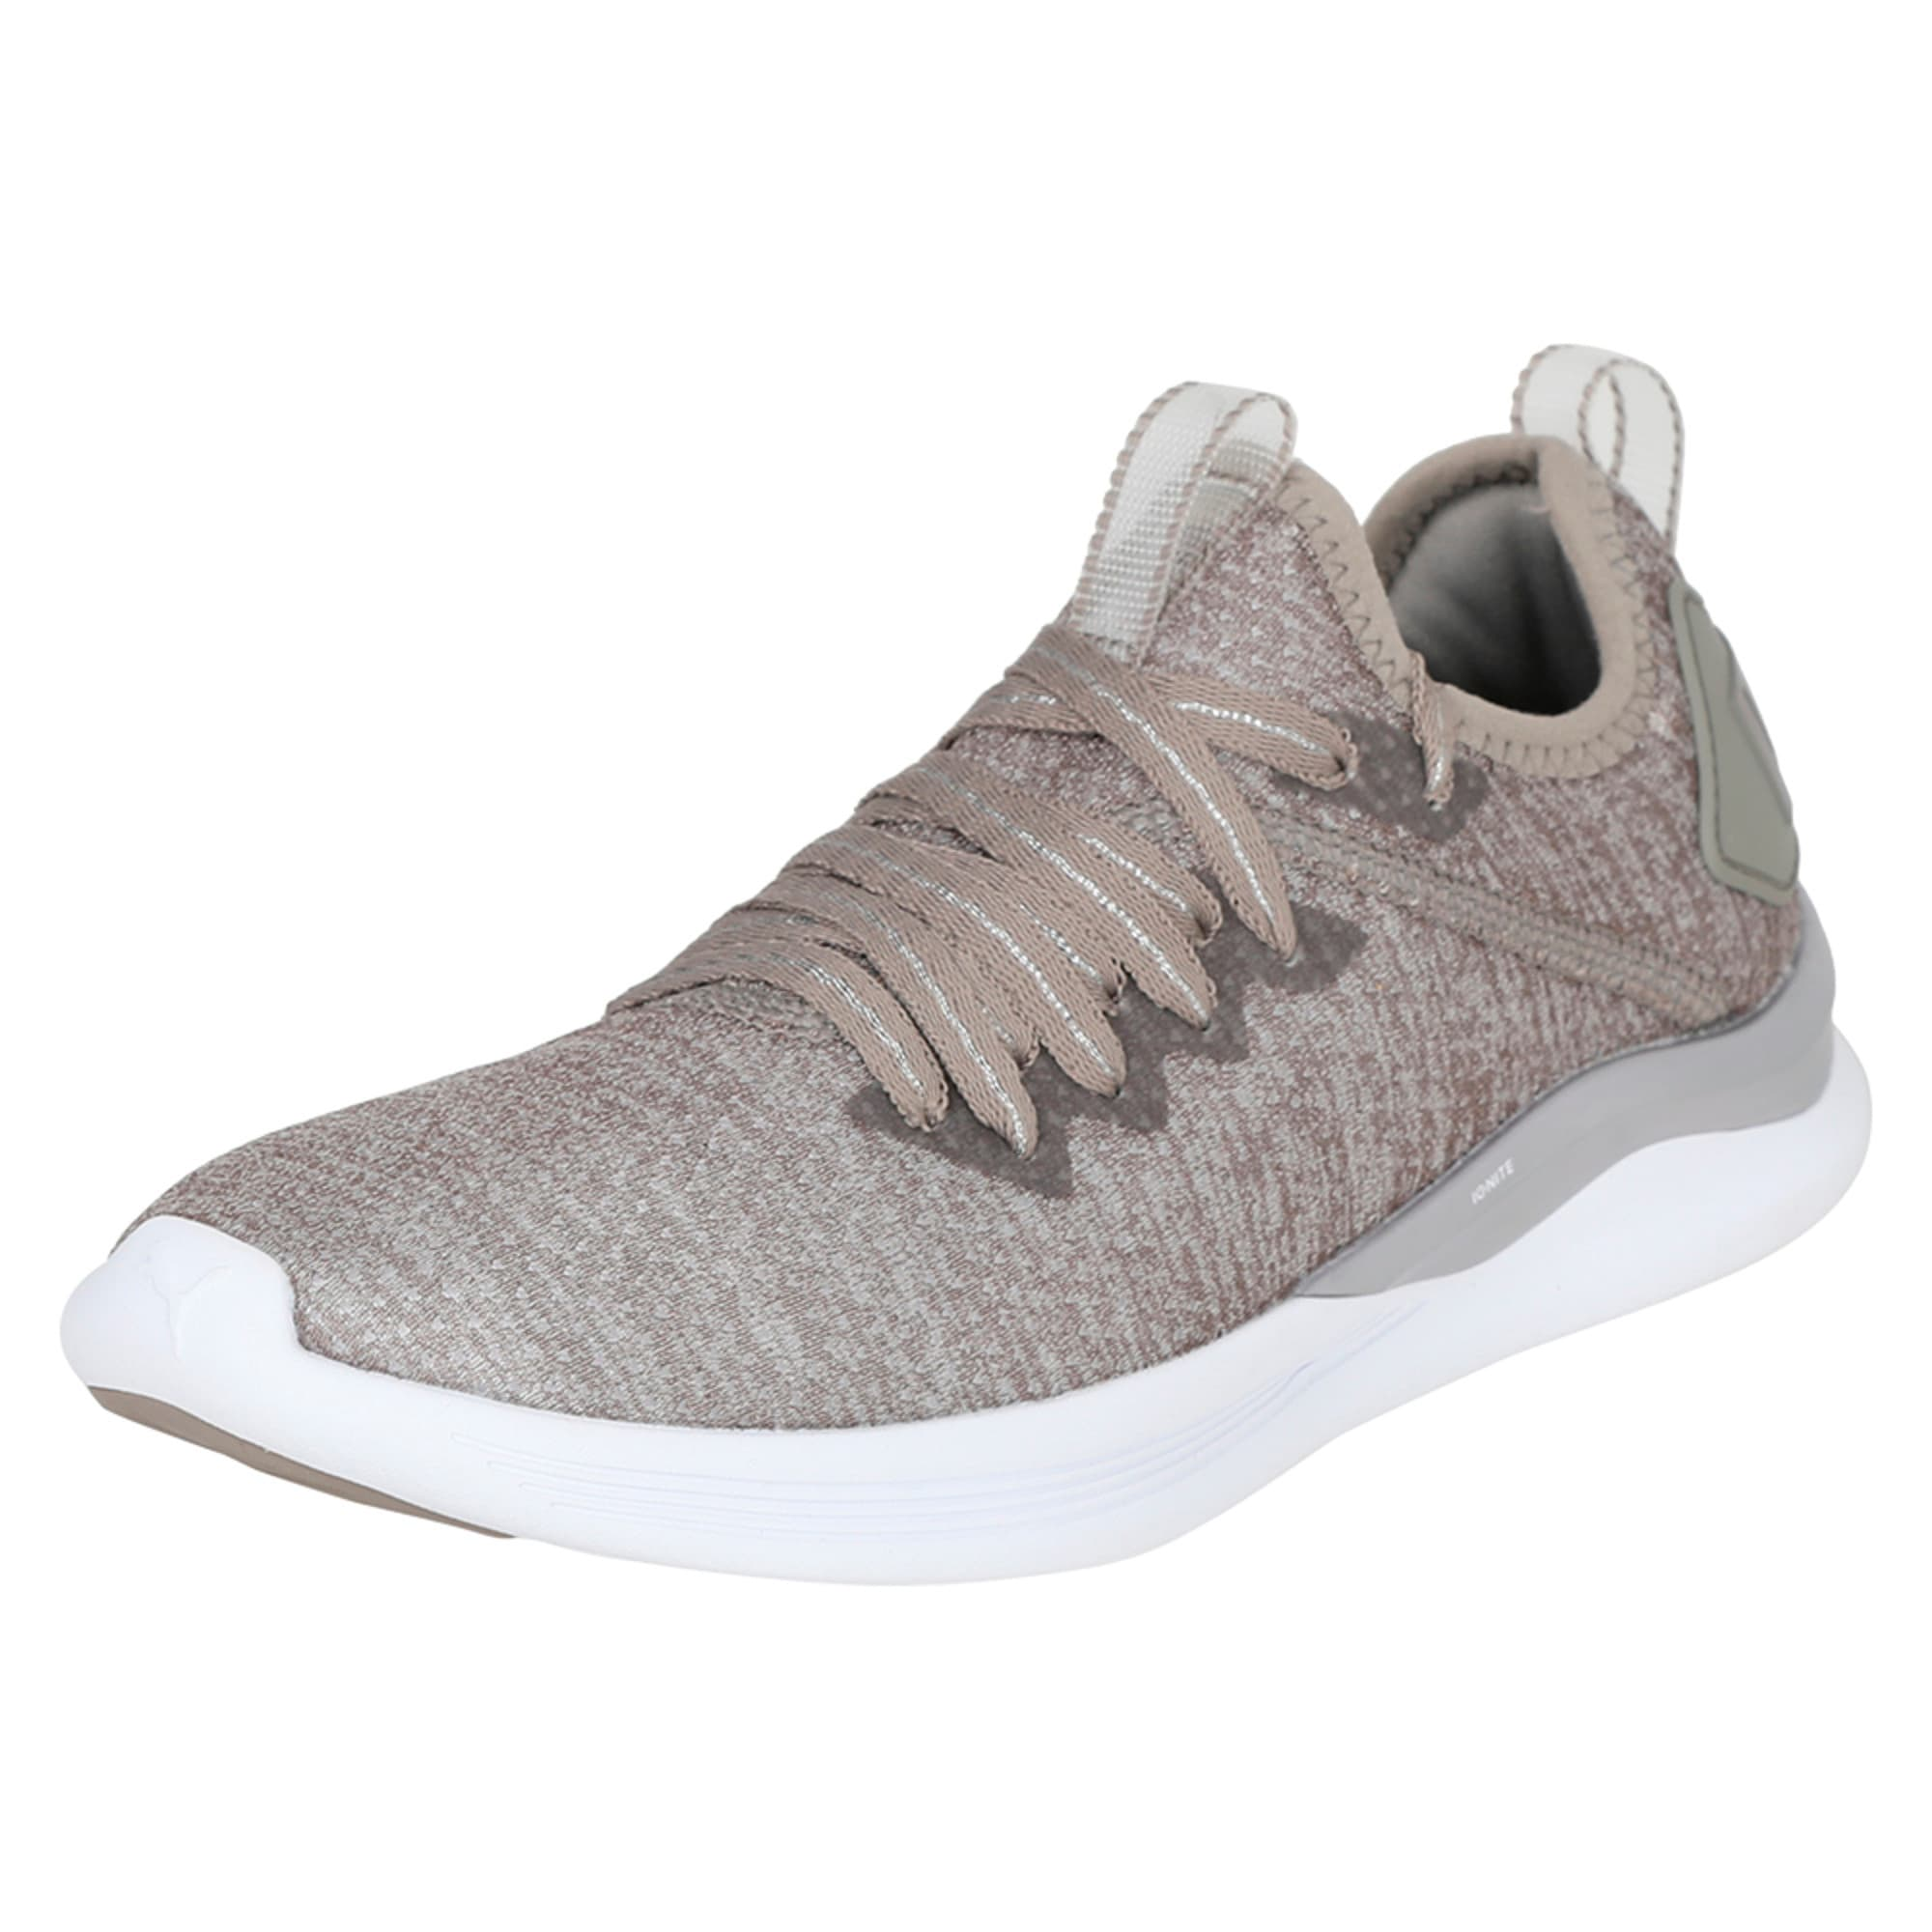 Thumbnail 1 of Flash IGNITE evoKNIT En Pointe Women's Trainers, Rock Ridge-Metallic Beige, medium-IND